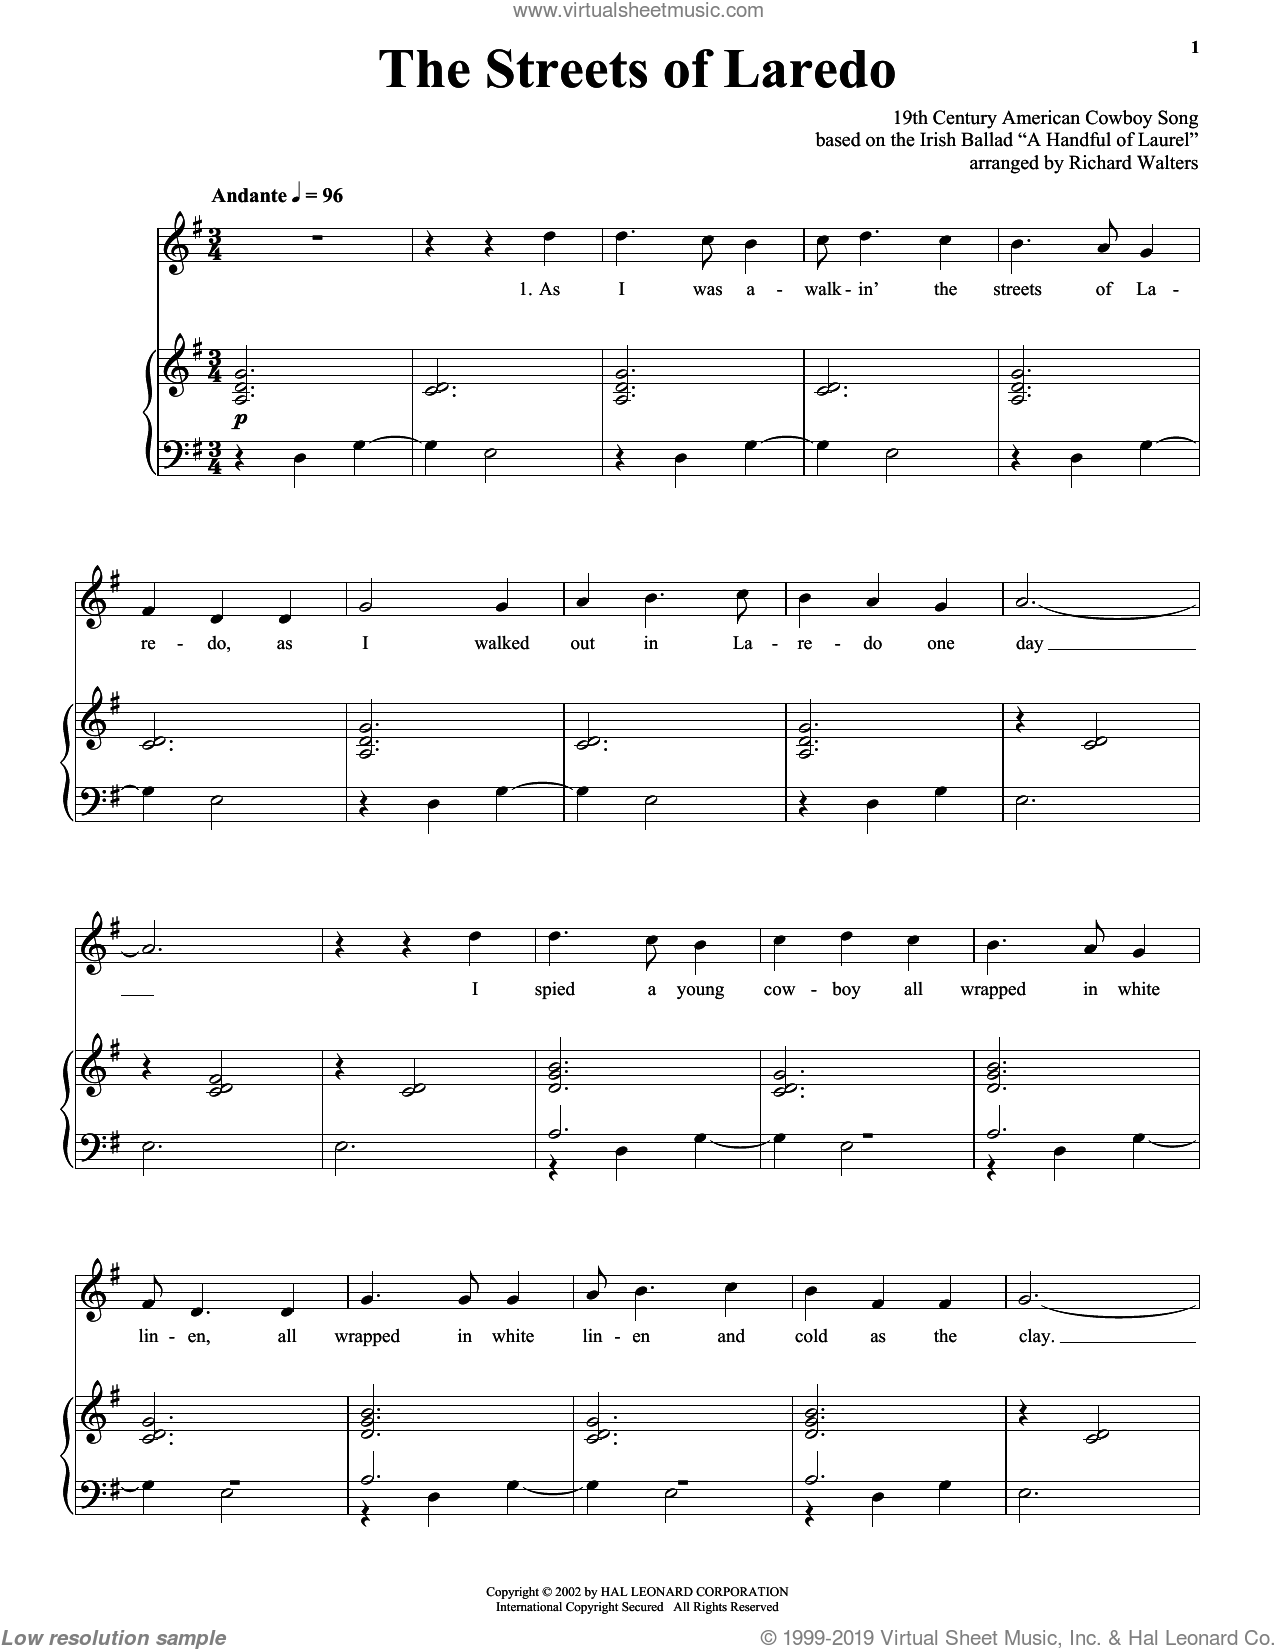 The Streets Of Laredo sheet music for voice and piano